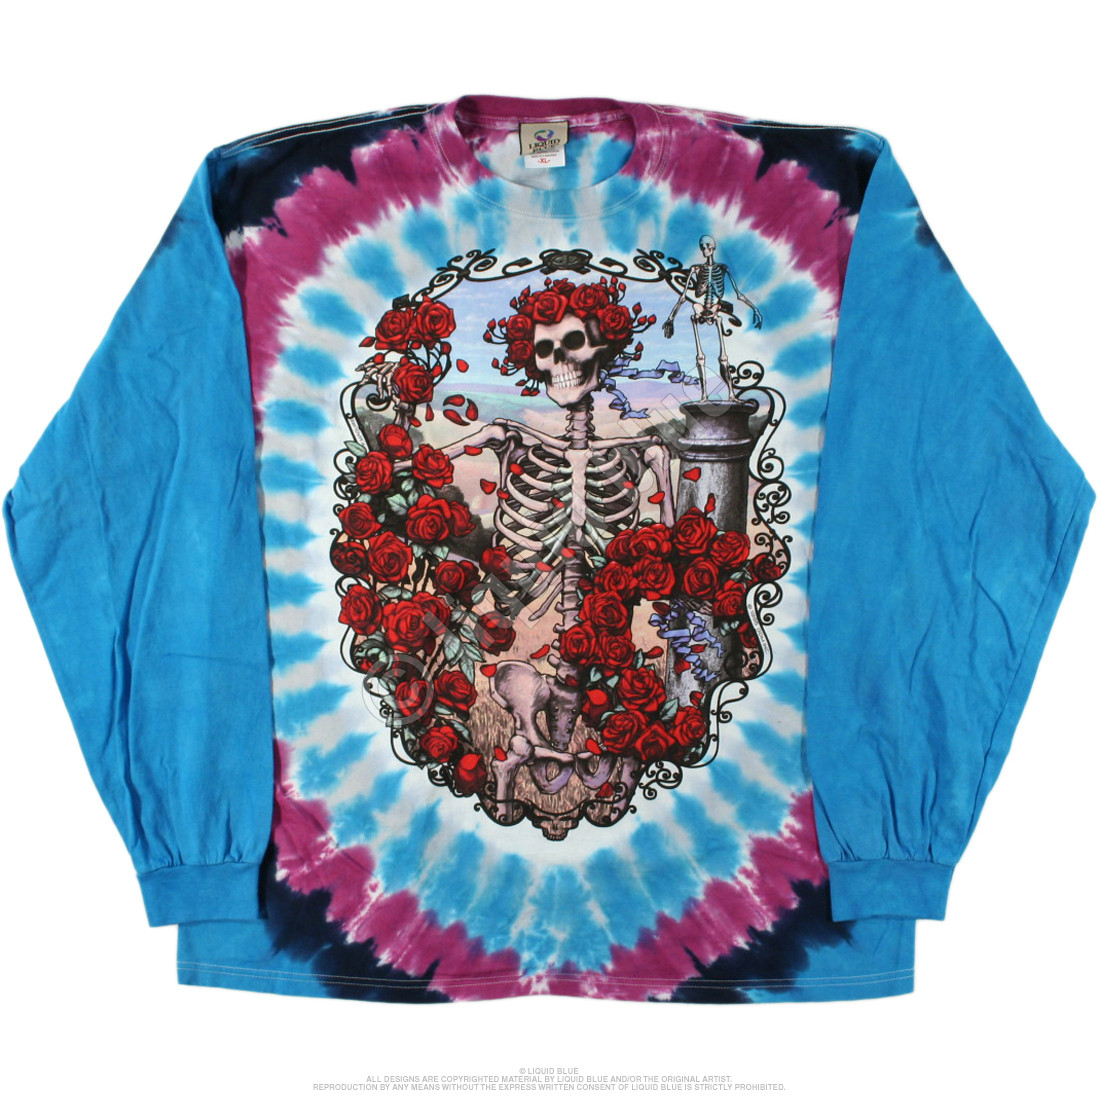 30th Anniversary Tie-Dye Long Sleeve T-Shirt